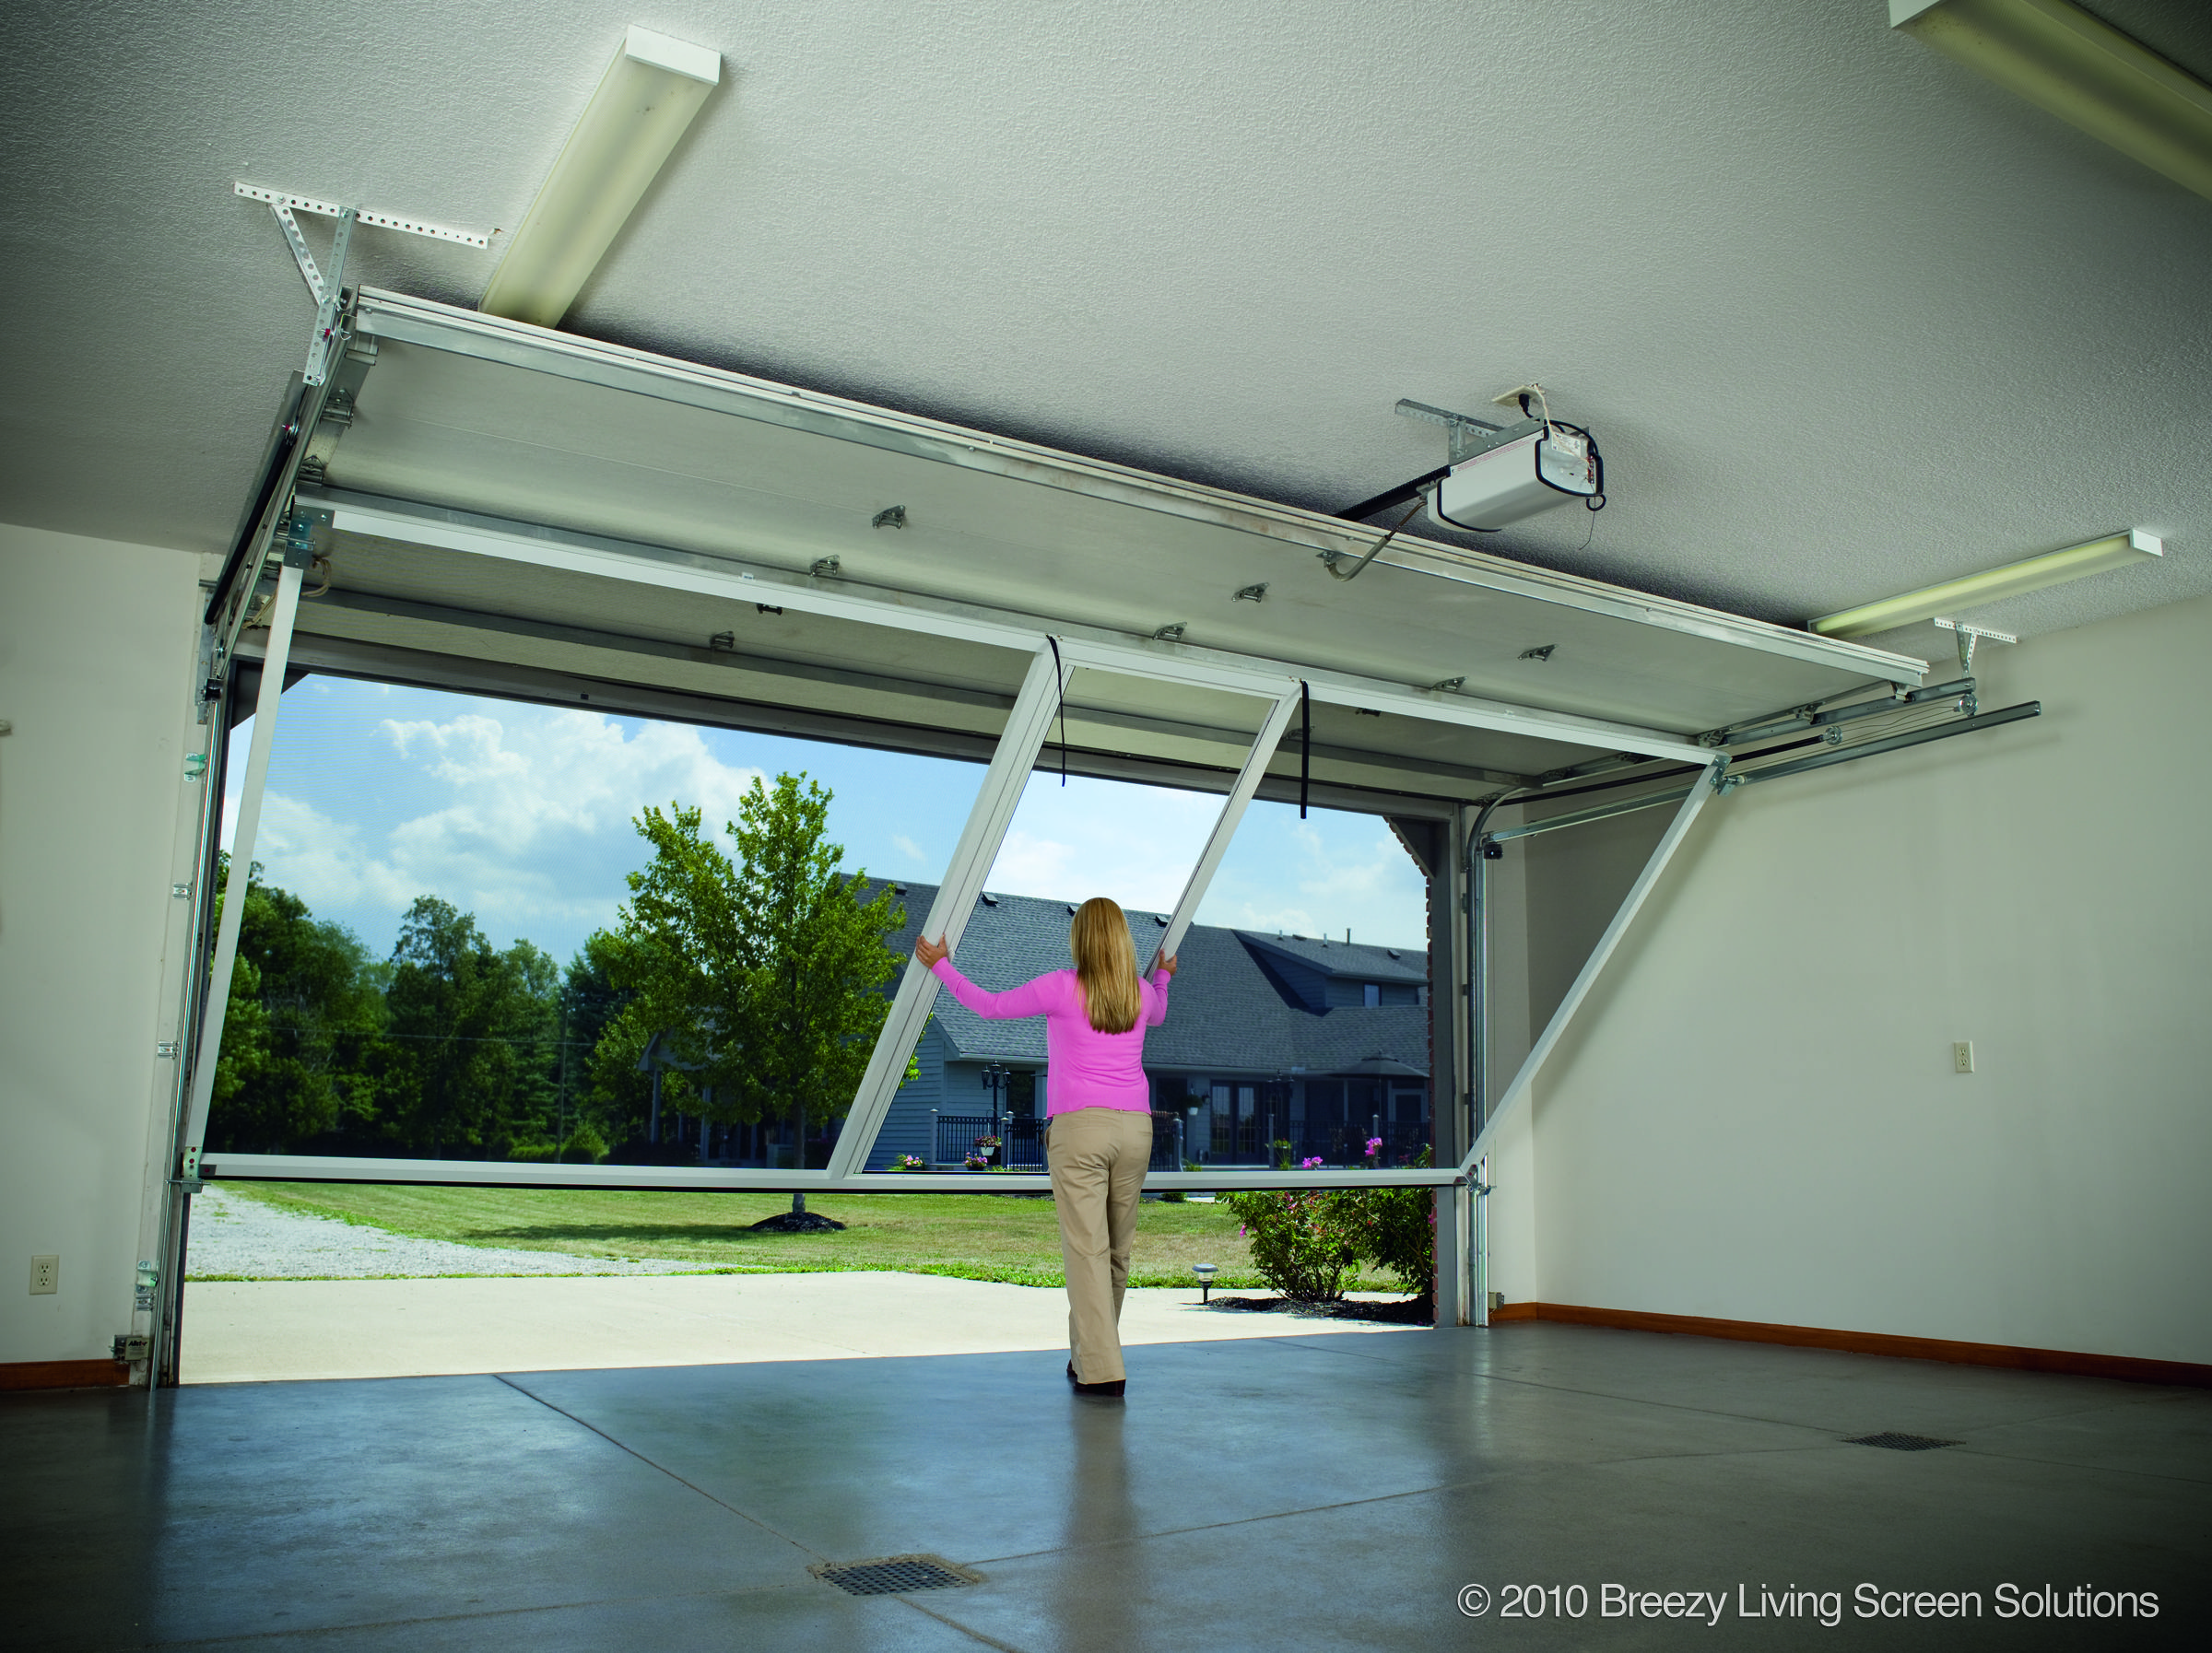 Garage Door Screen That Rolls Up Garage Screen System Lifestyle Garage Screen Door Contains A